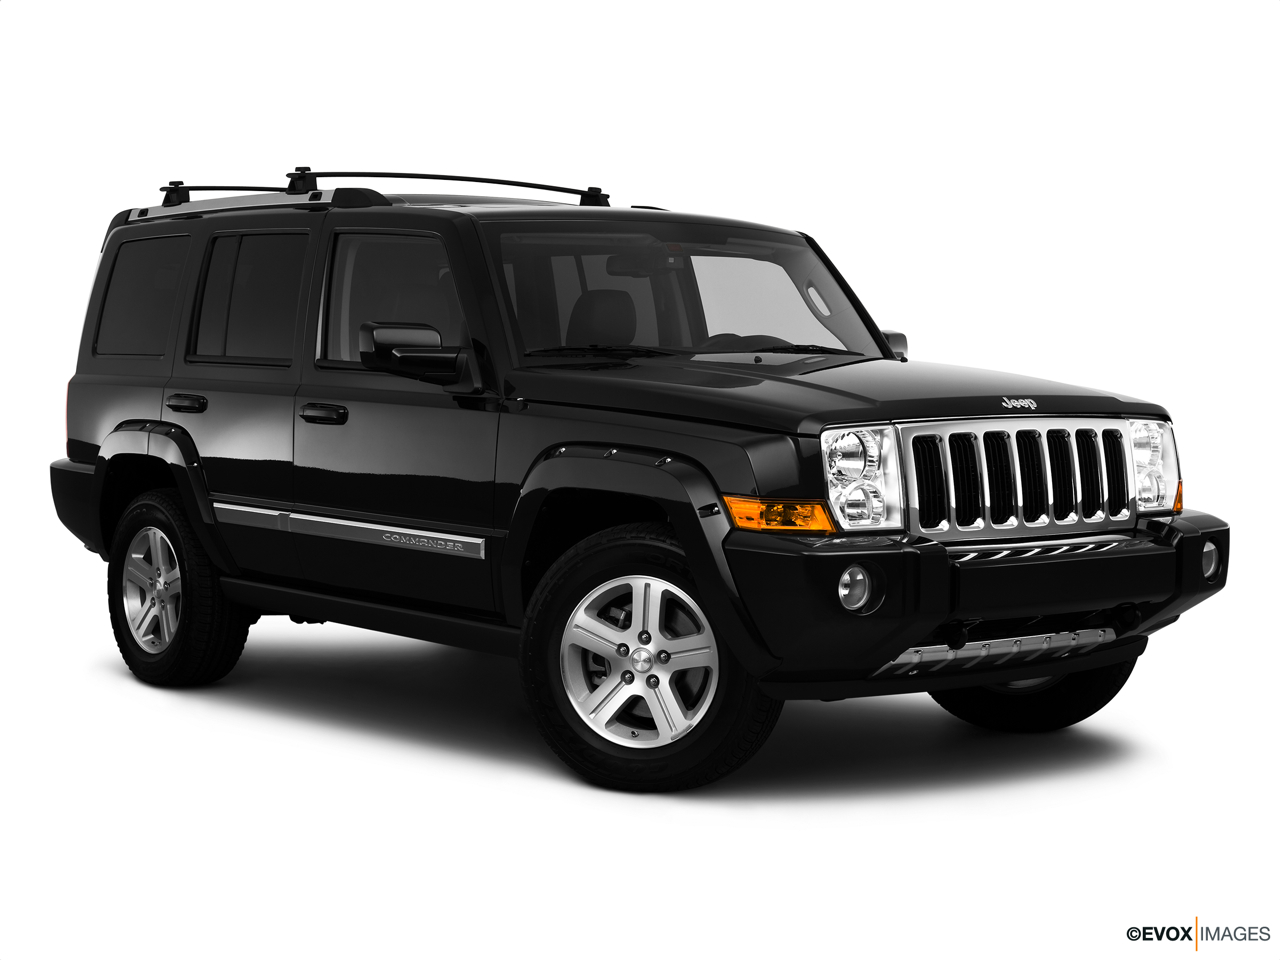 2010 Jeep Commander Limited Front passenger 3/4 w/ wheels turned.